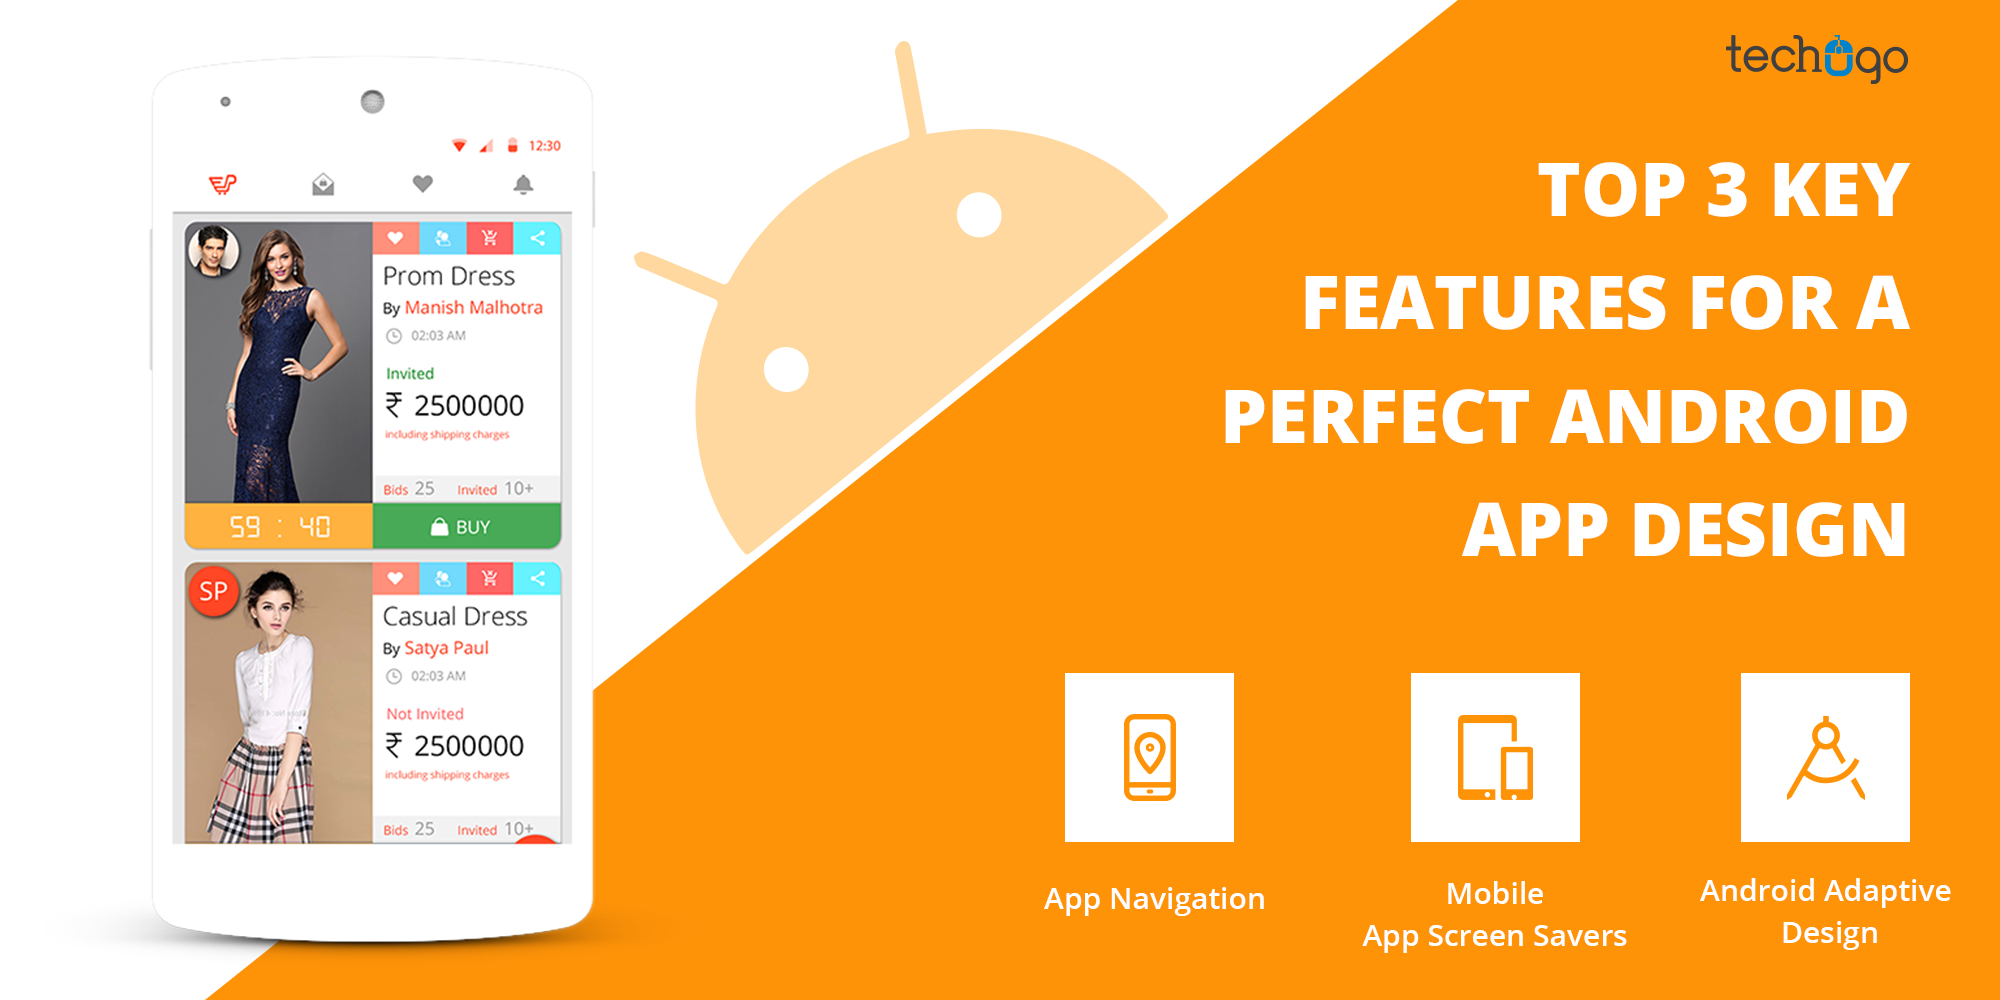 TOP 3 KEY FEATURES FOR A PERFECT ANDROID APP DESIGN